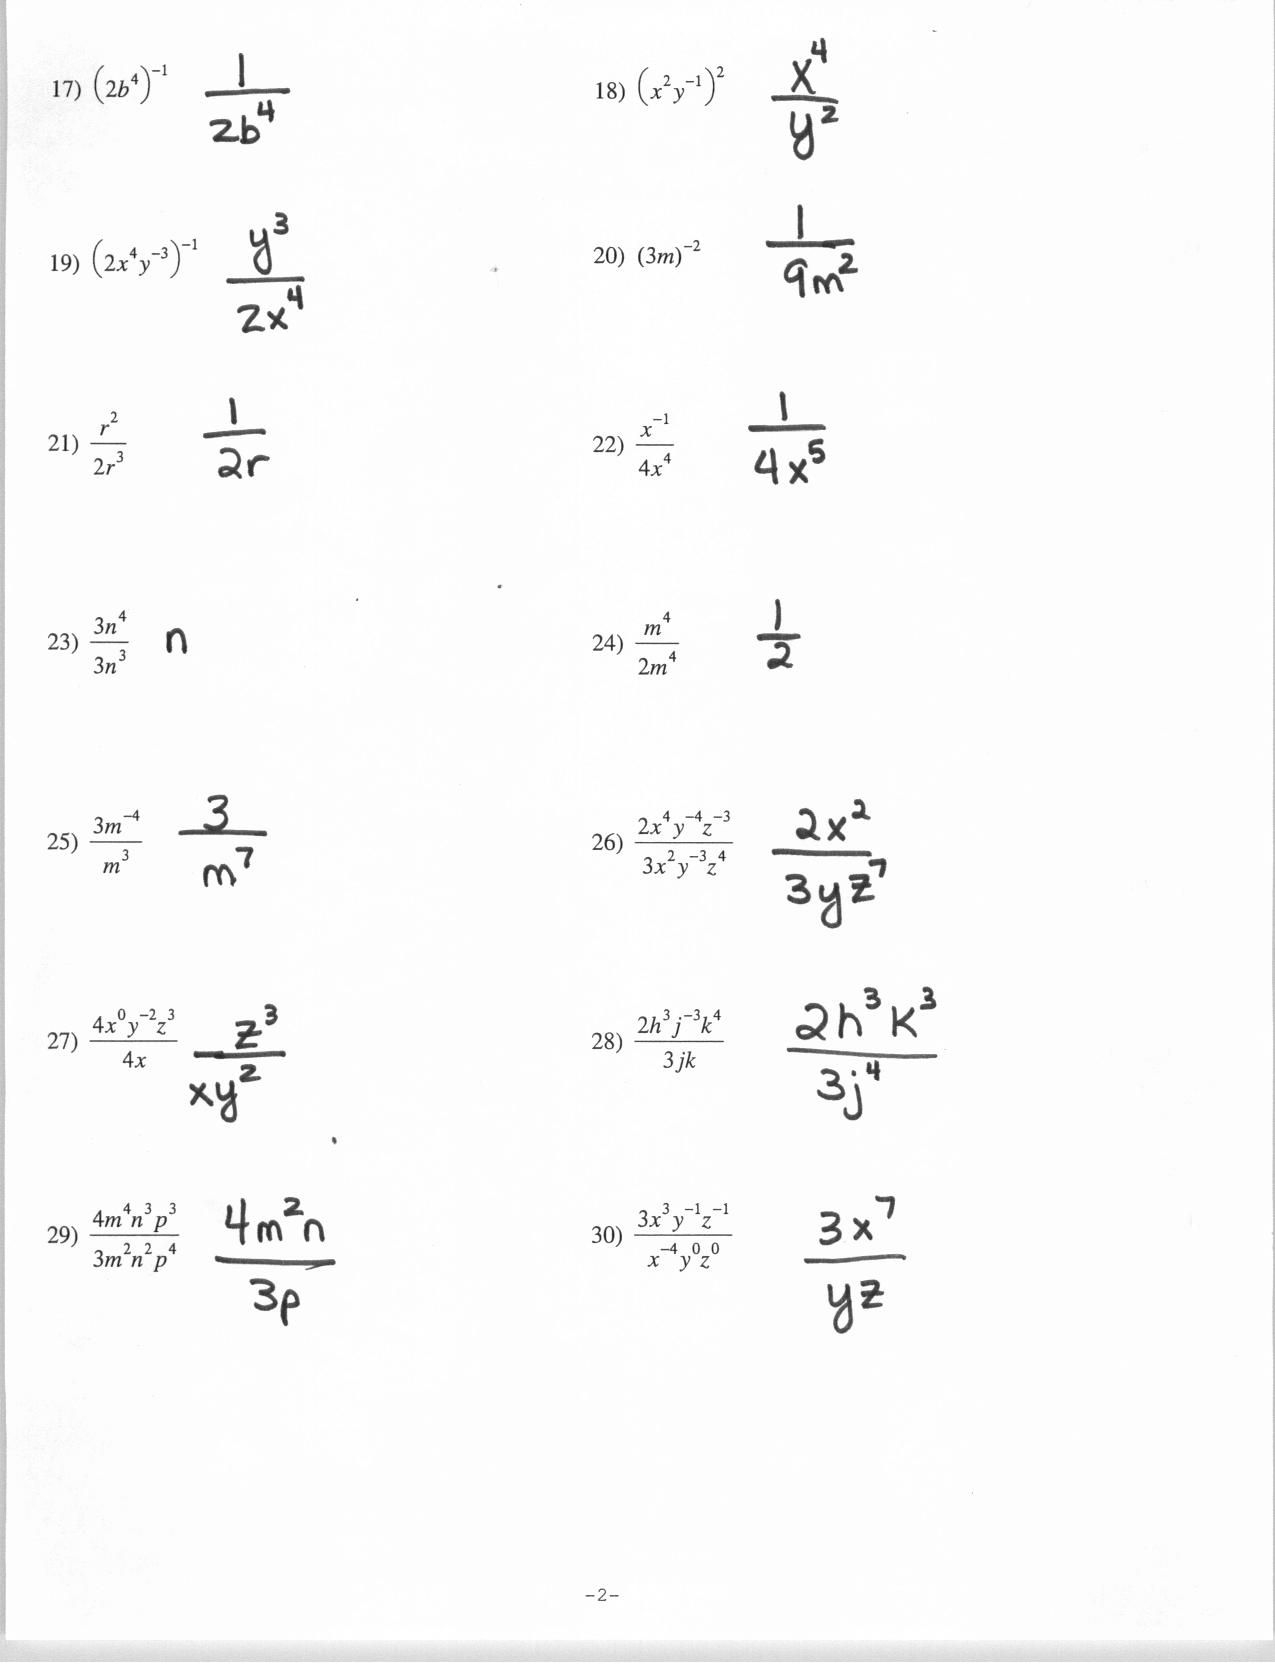 Properties Of Exponents Worksheet And Answers | Kids Activities